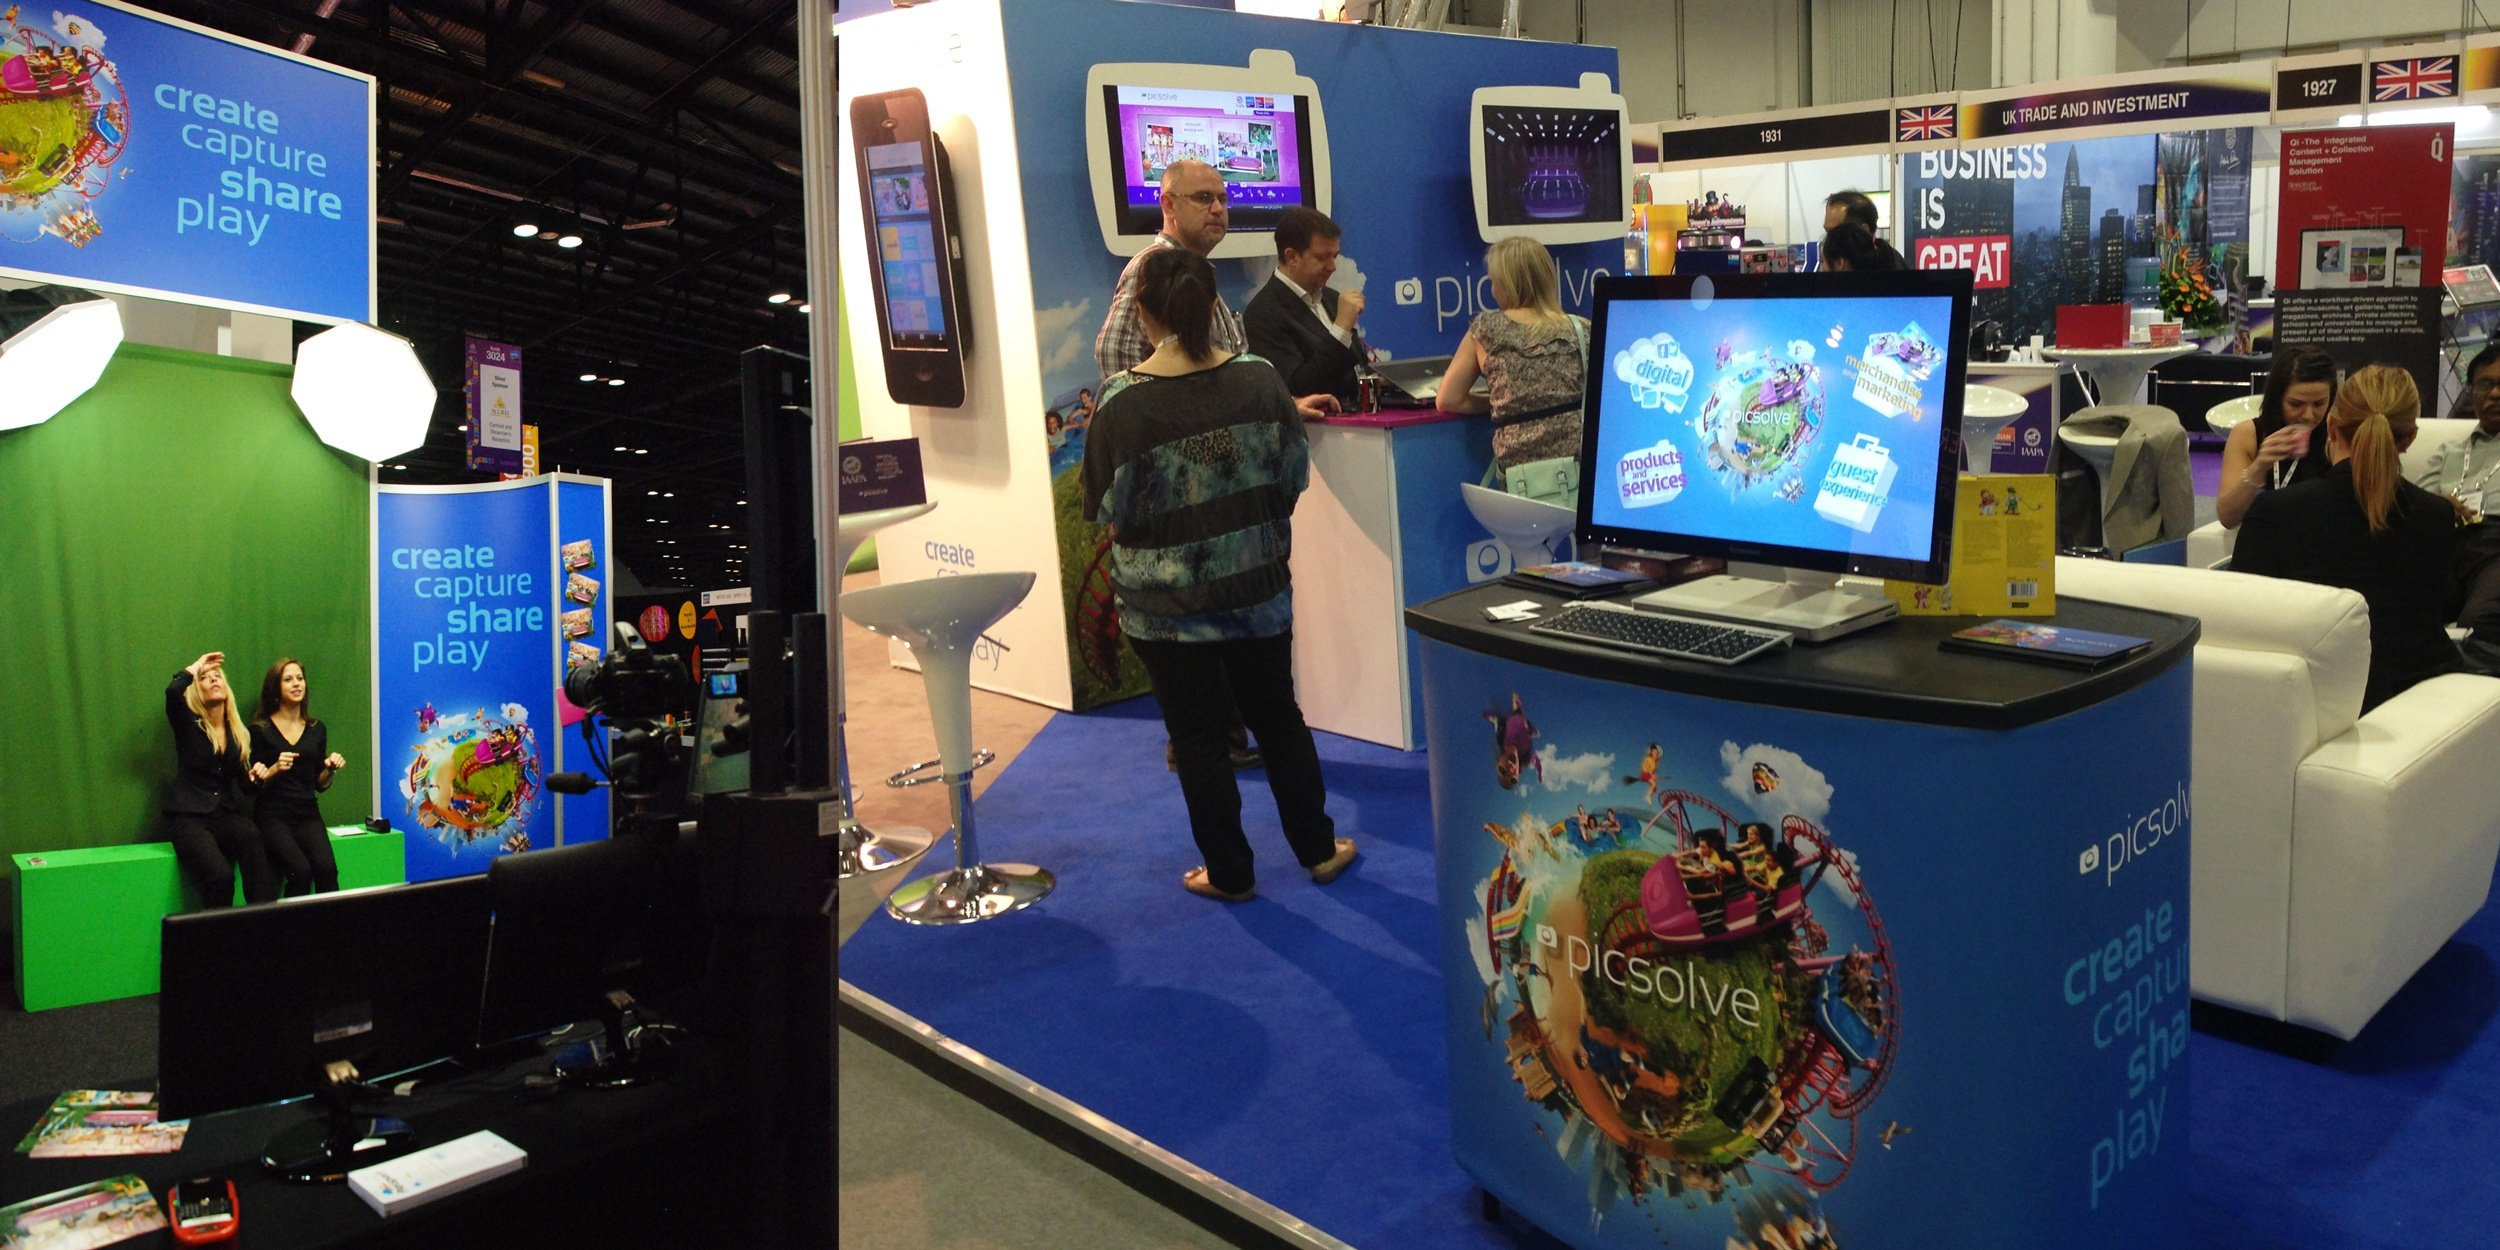 Picsolve's stand at IAAPA featuring green screen experience and photography